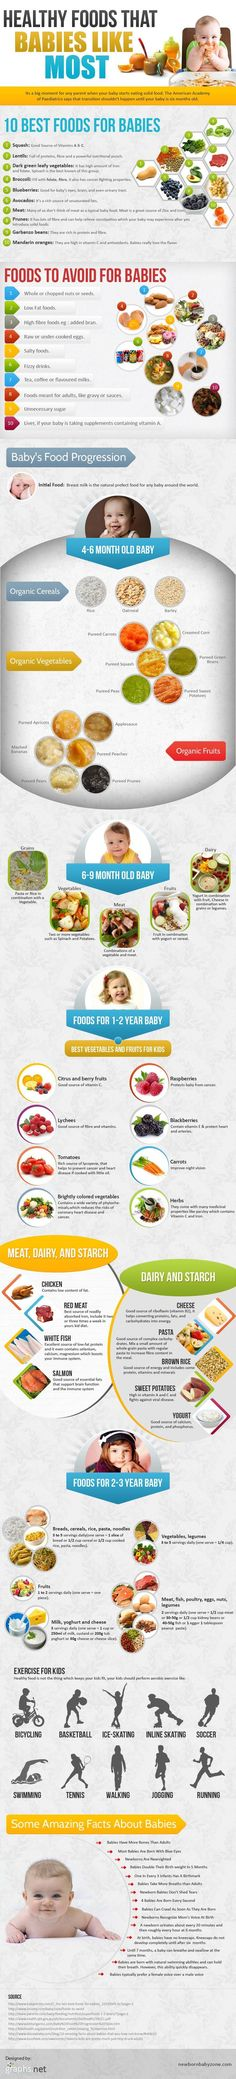 Infographic:The Best Health Foods For Your Baby